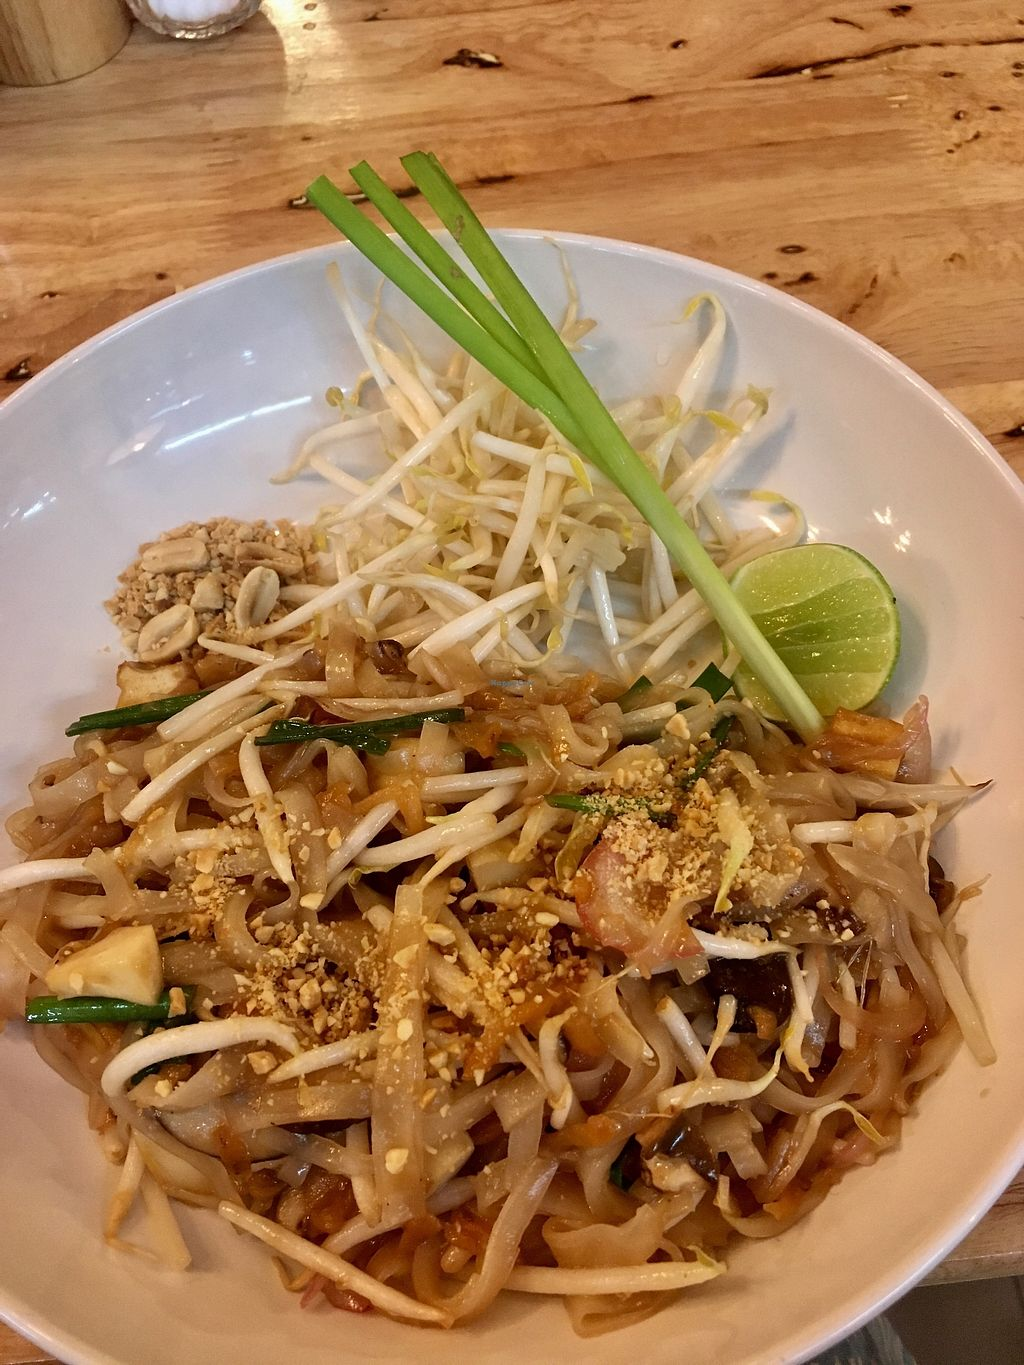 "Photo of Hua Hin Vegan Cafe and Wine  by <a href=""/members/profile/Charliemcleanash"">Charliemcleanash</a> <br/>Pad thai <br/> July 15, 2017  - <a href='/contact/abuse/image/95513/280477'>Report</a>"